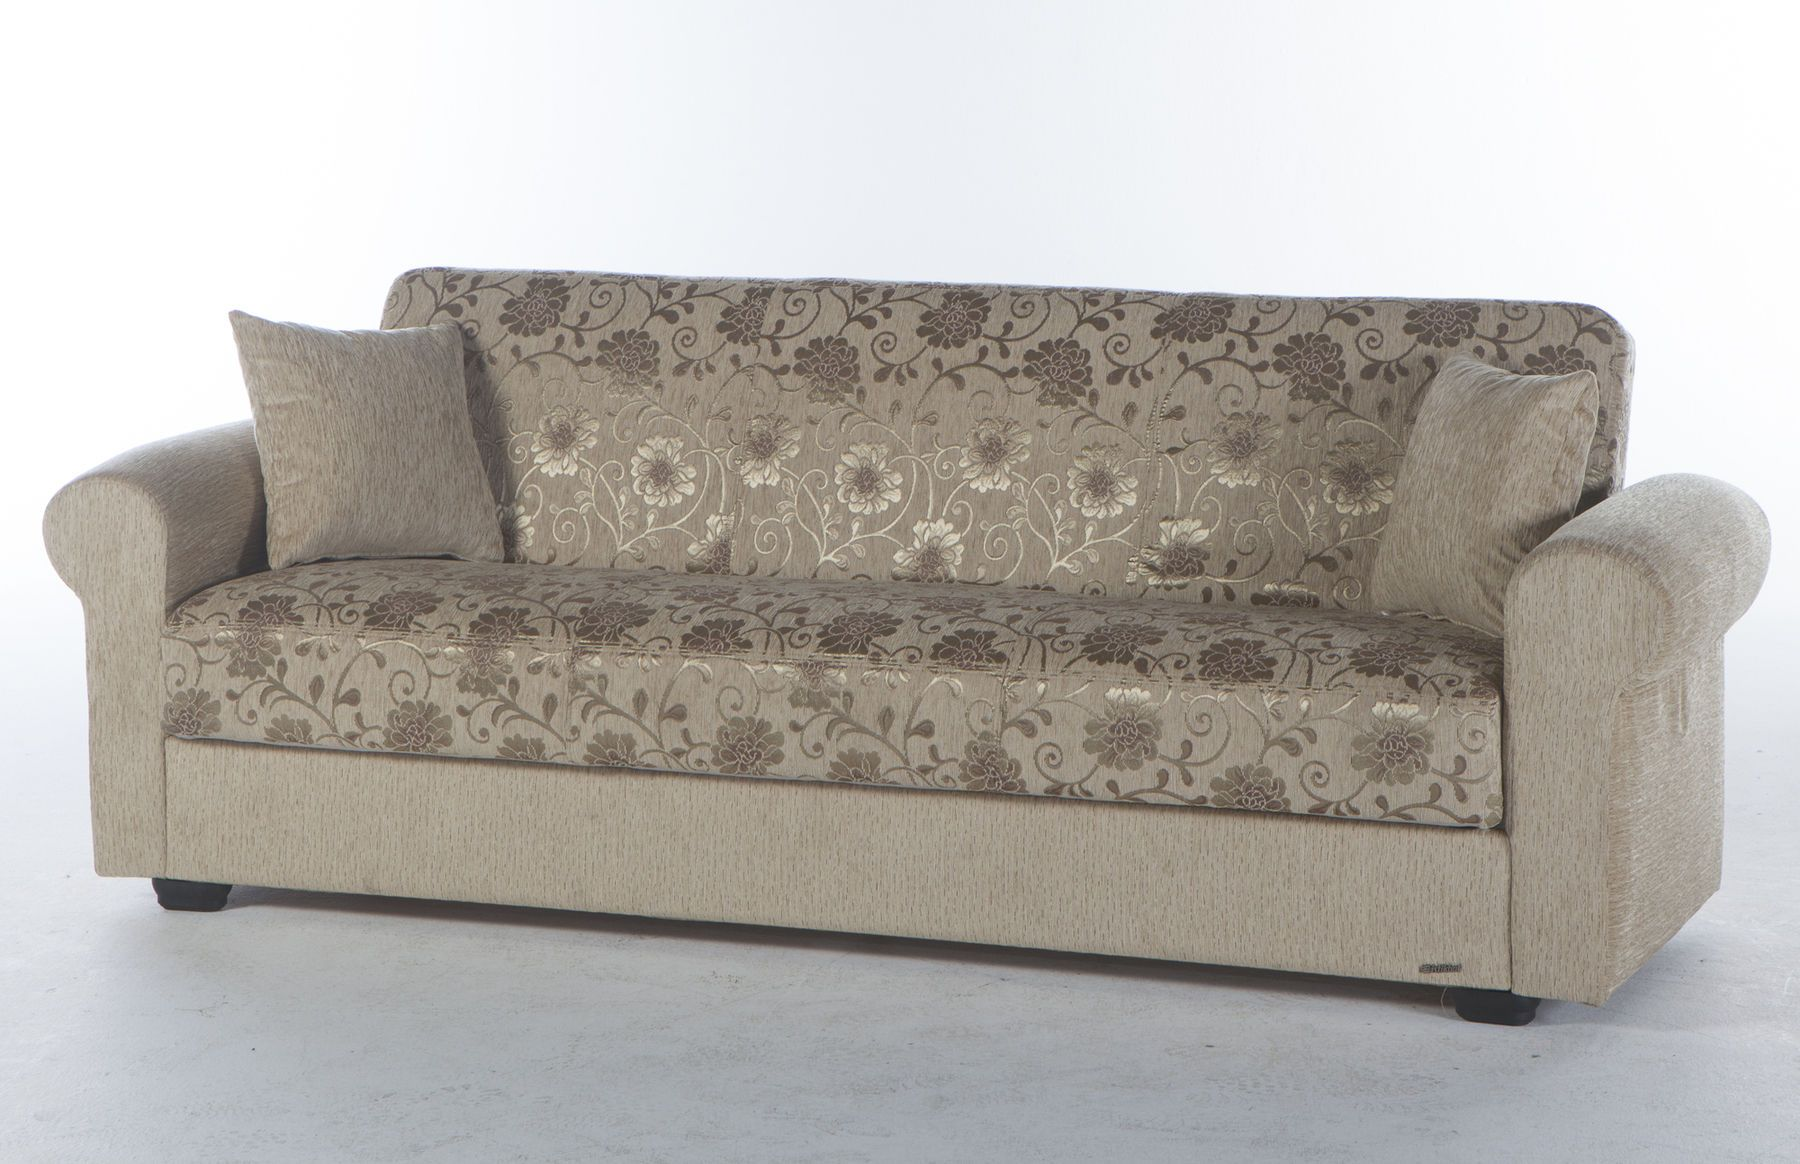 Elita Dark Beige Sofa Love Seat Beige Loveseat Oversized Chair Living Room